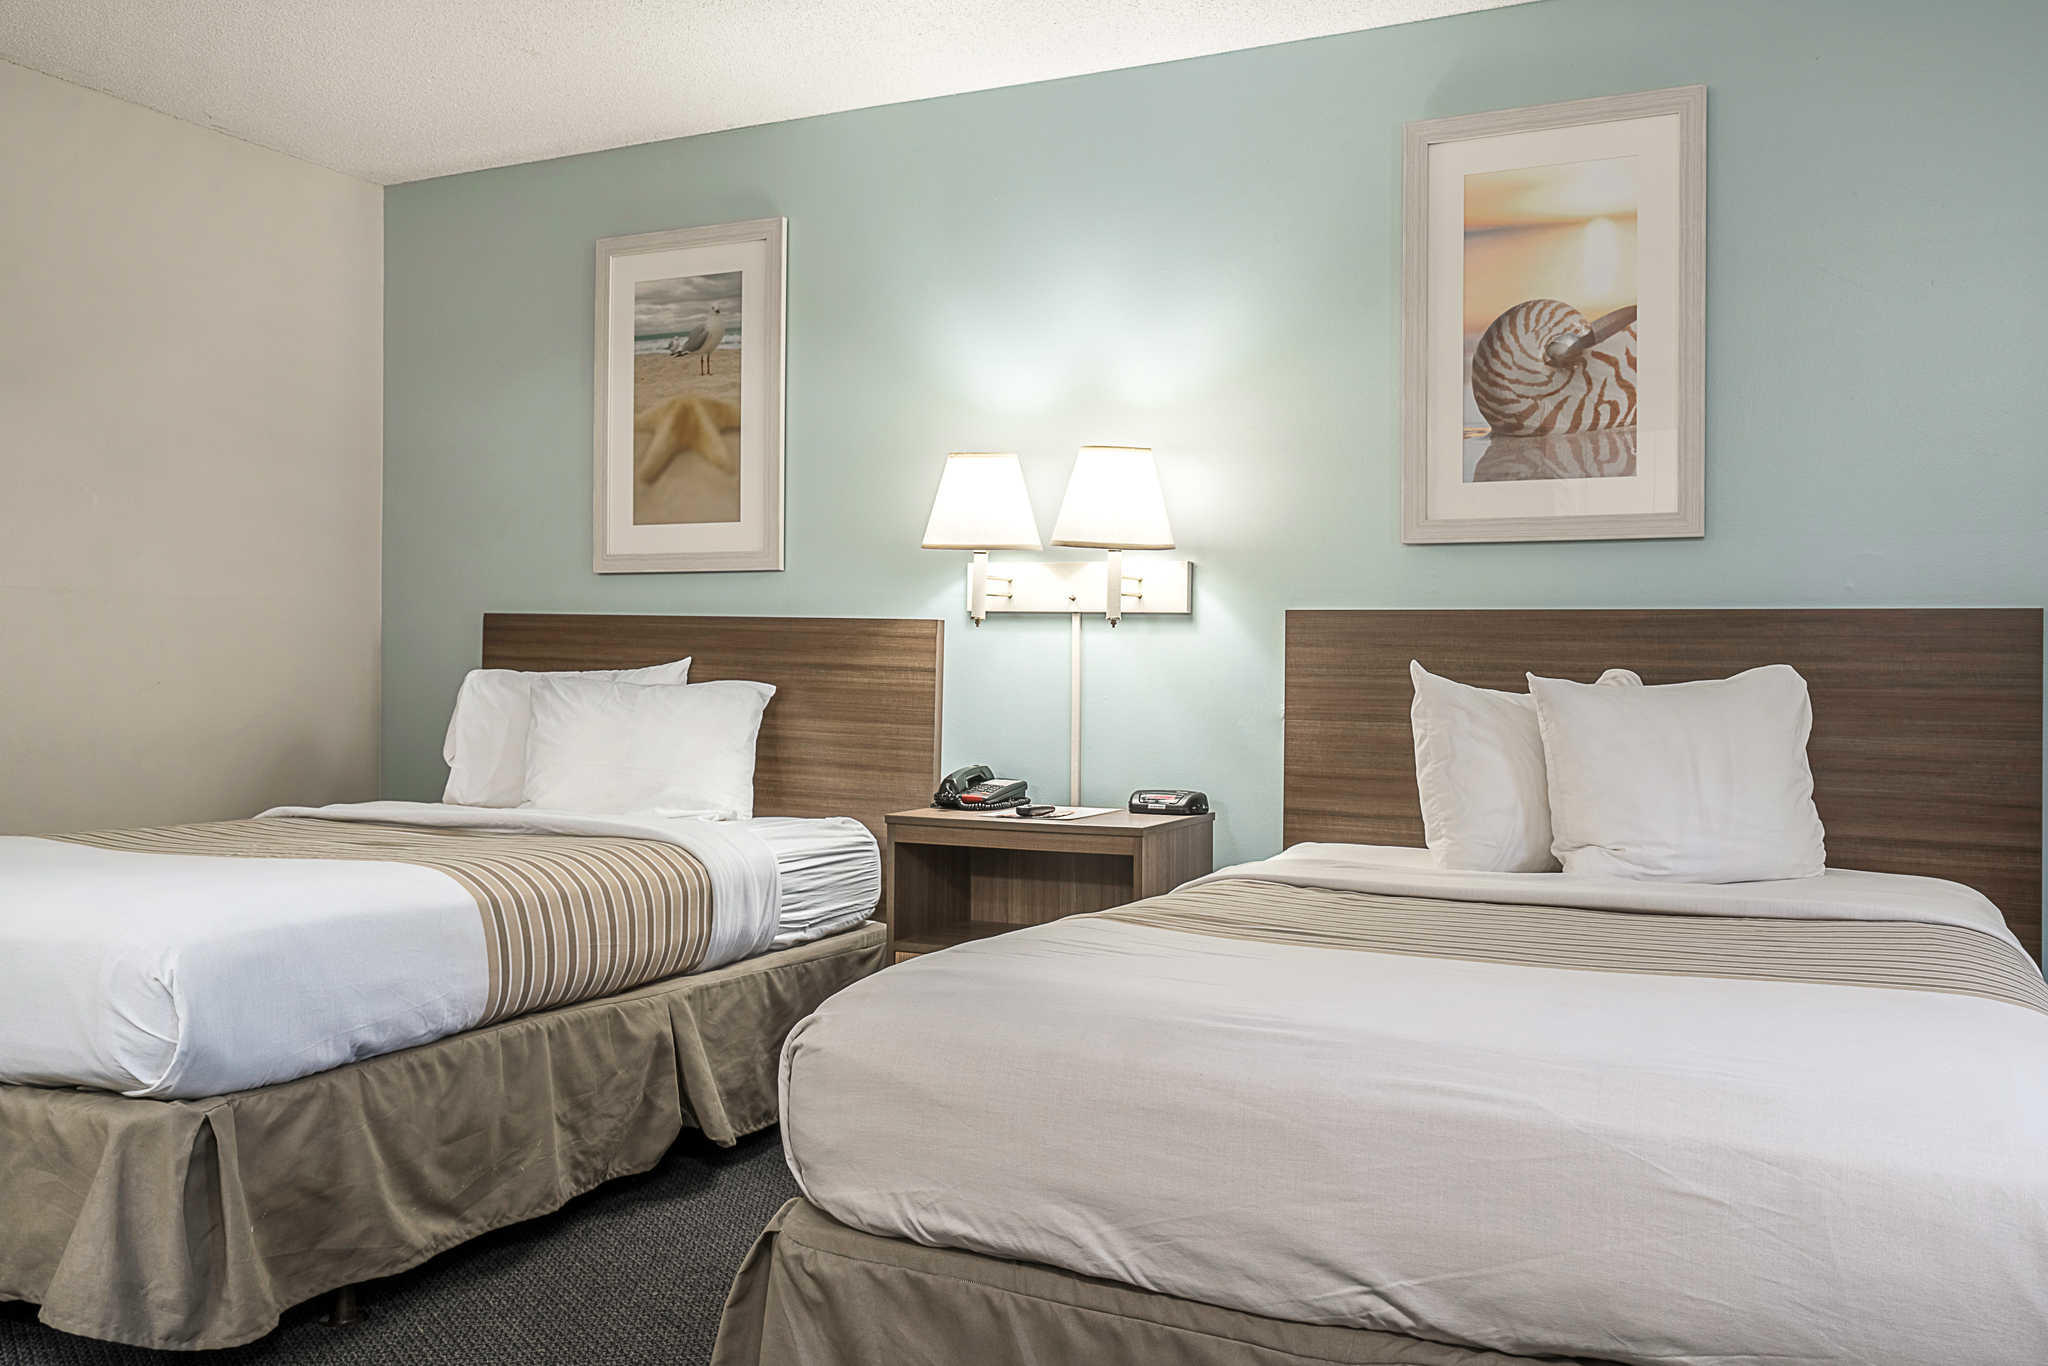 Suburban Extended Stay of Wilmington Wilmington (910)793-1920